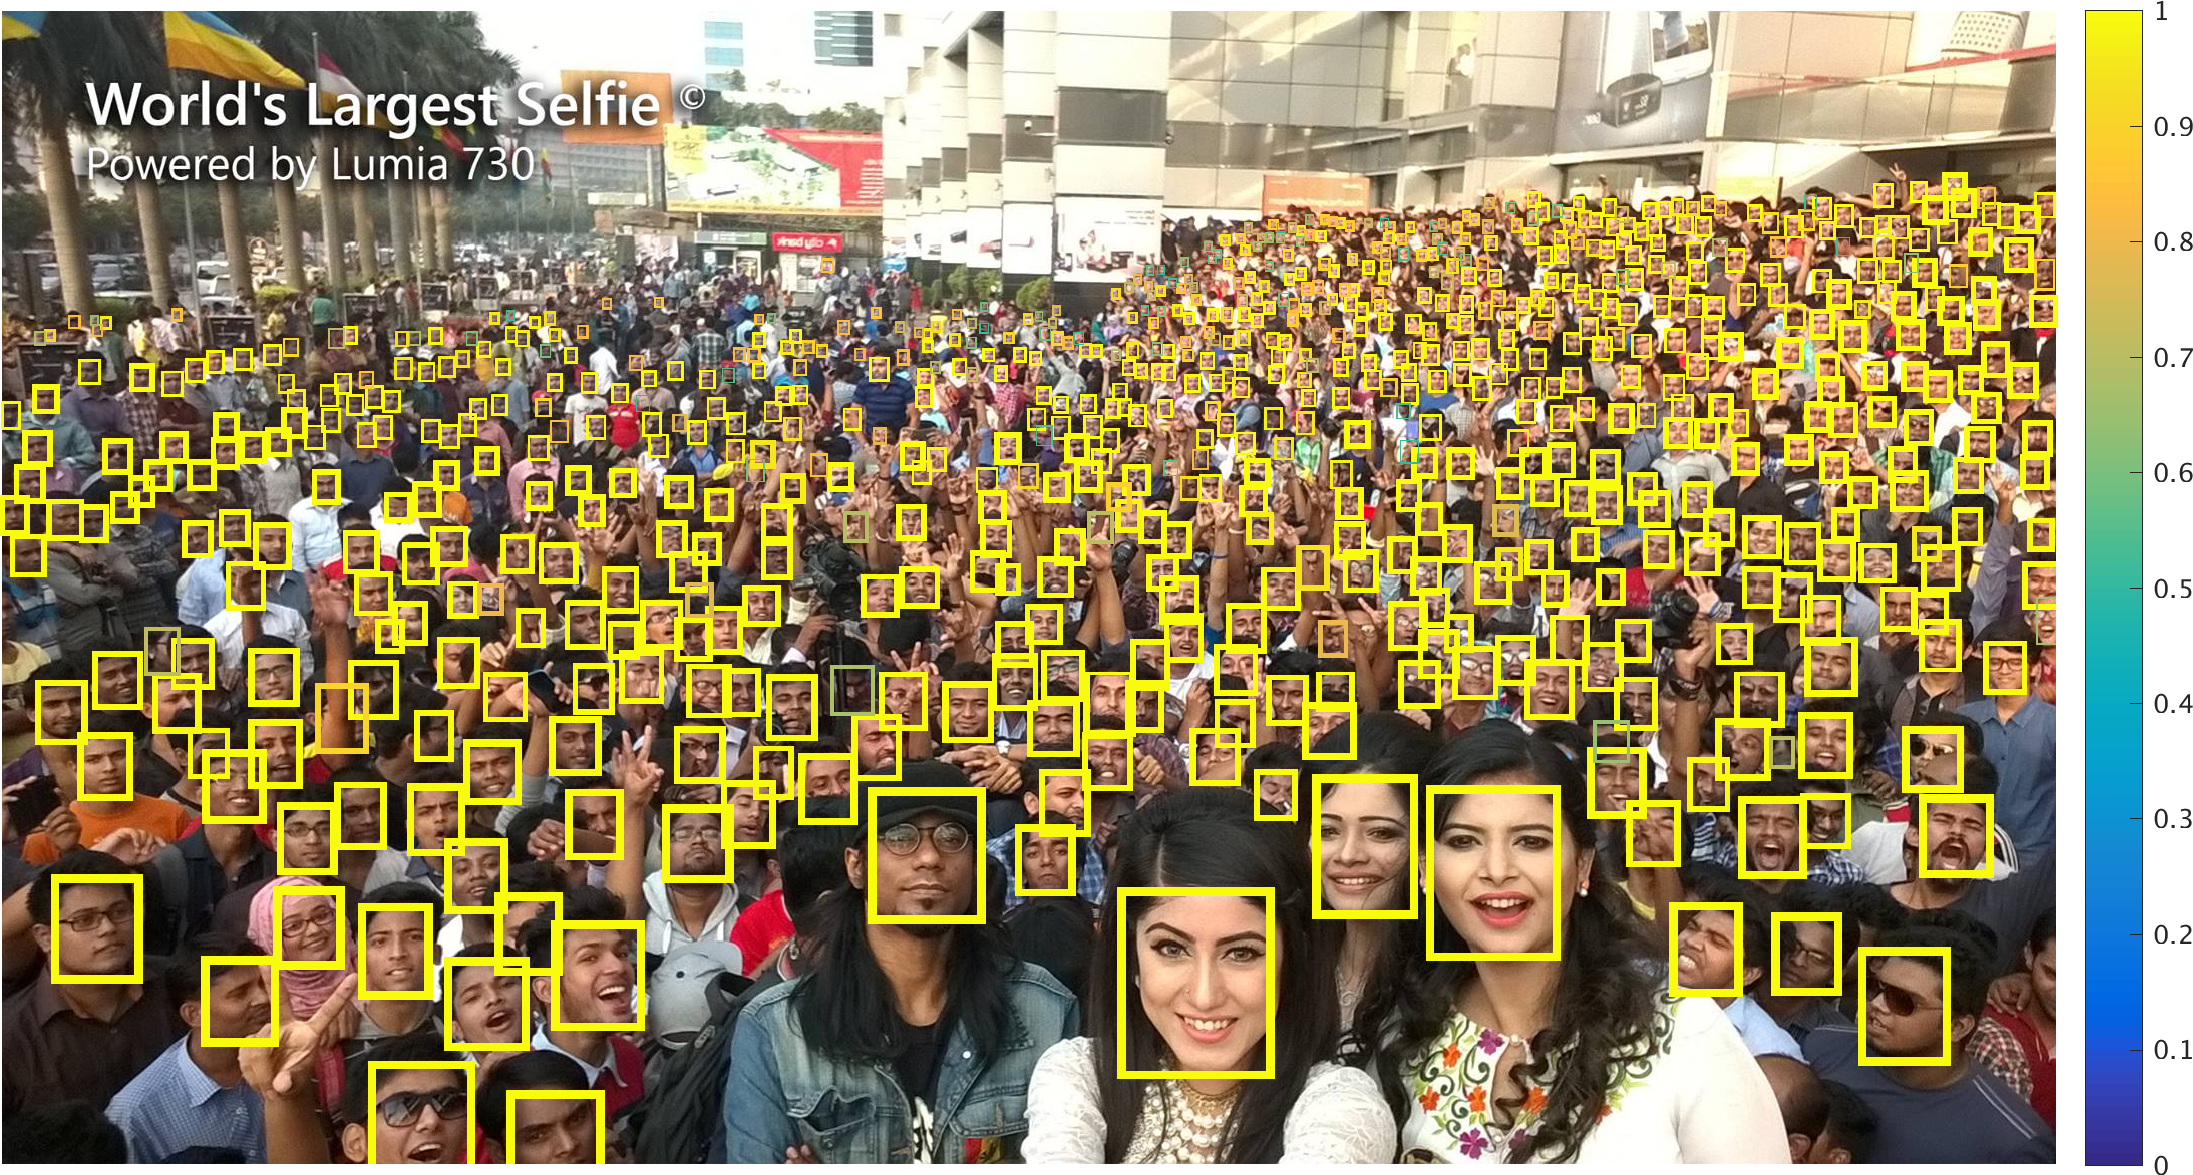 /up-to-speed-on-deep-learning-august-update-8f119bd4bc87 feature image